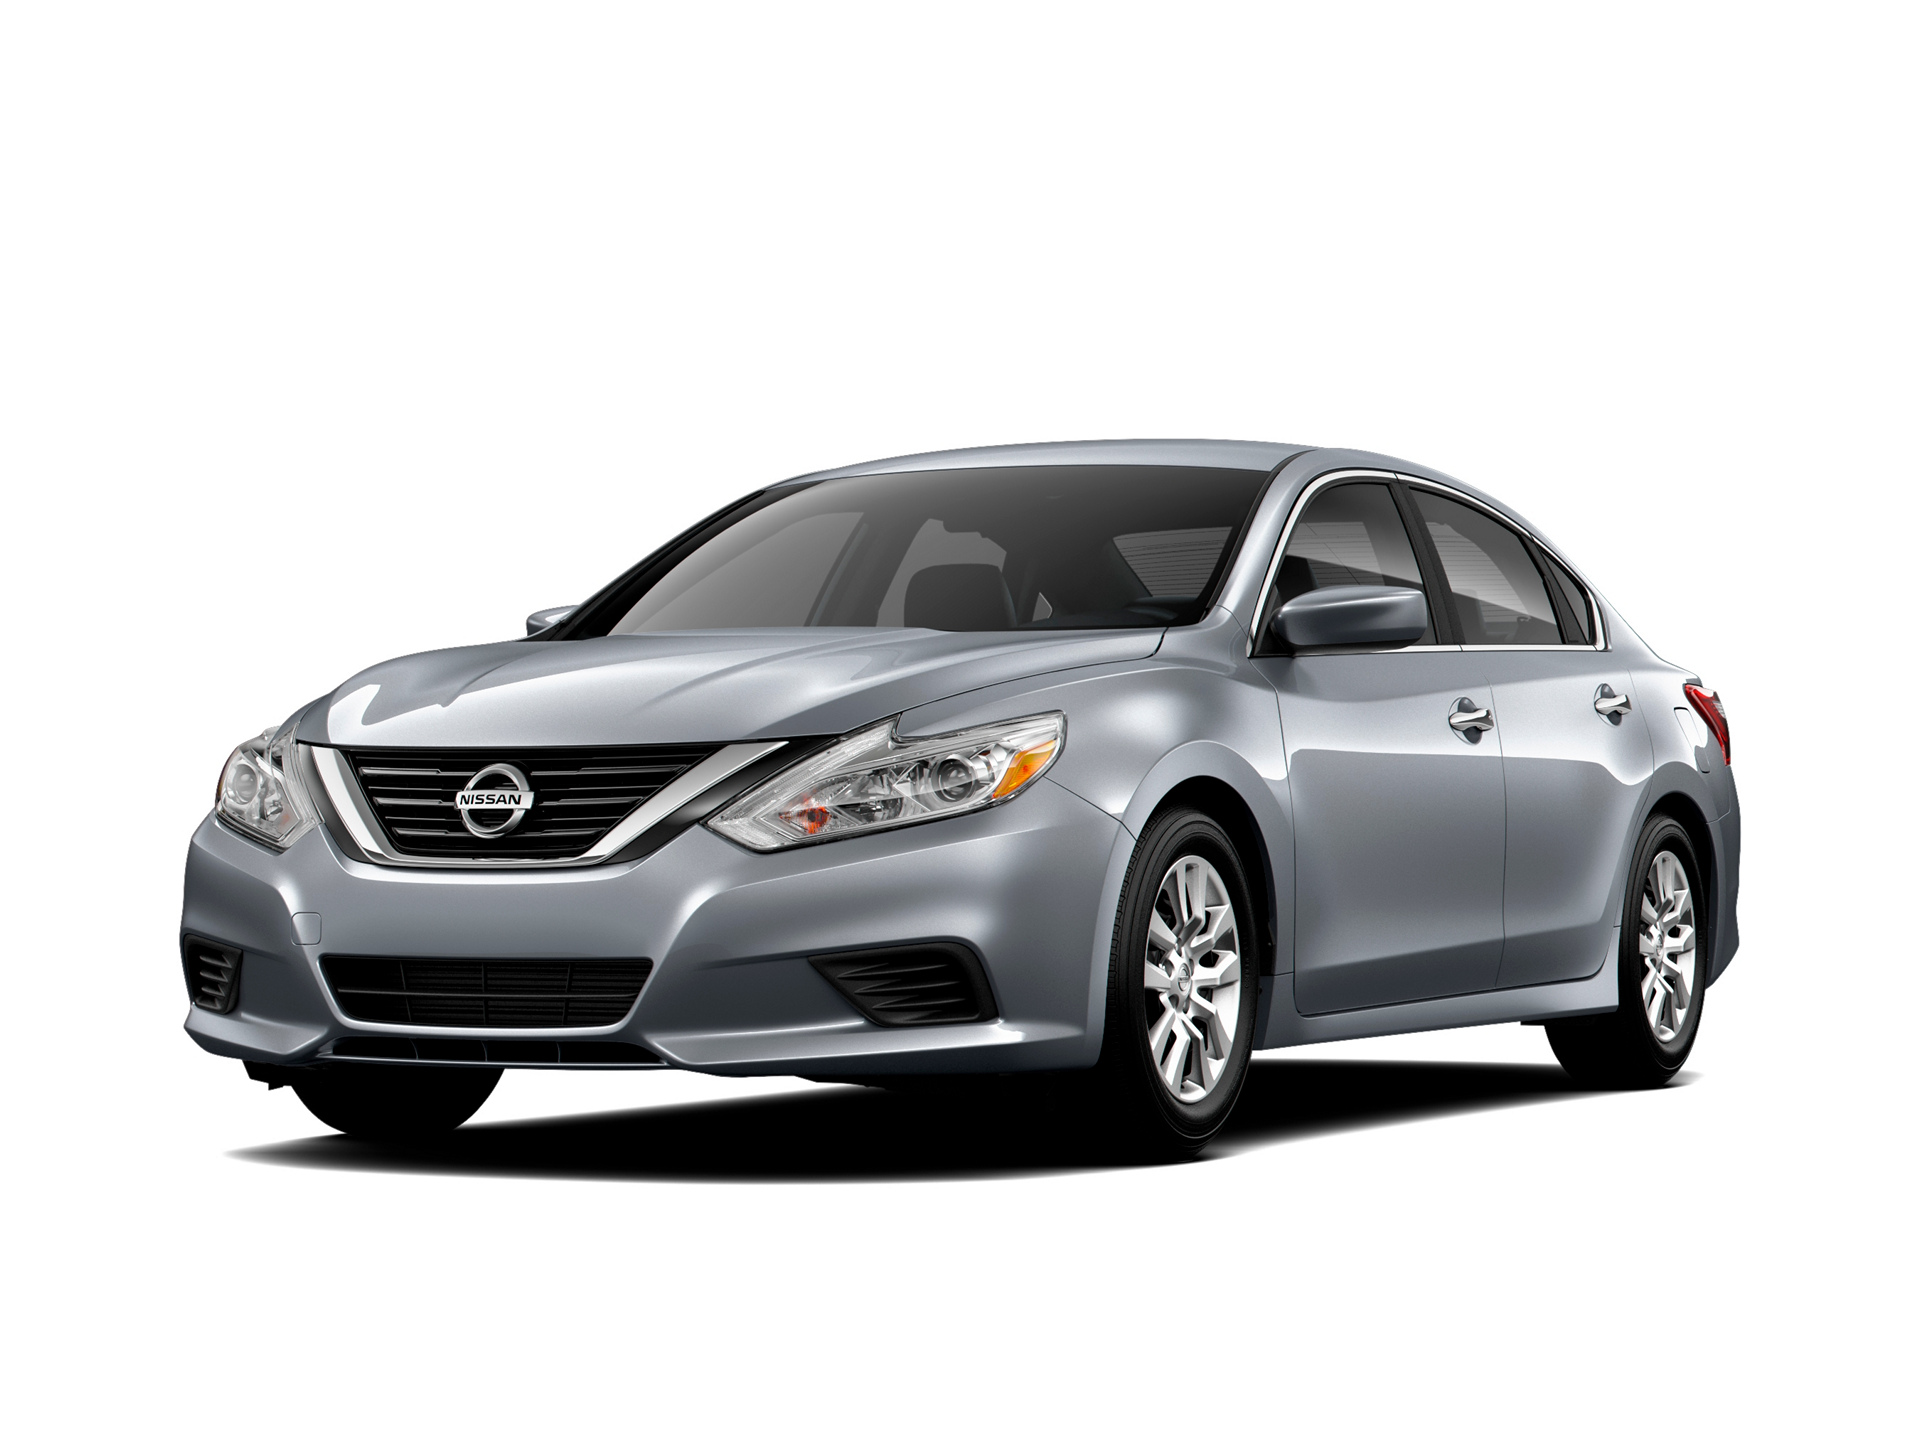 2017 Nissan Altima © Nissan Motor Co., Ltd.